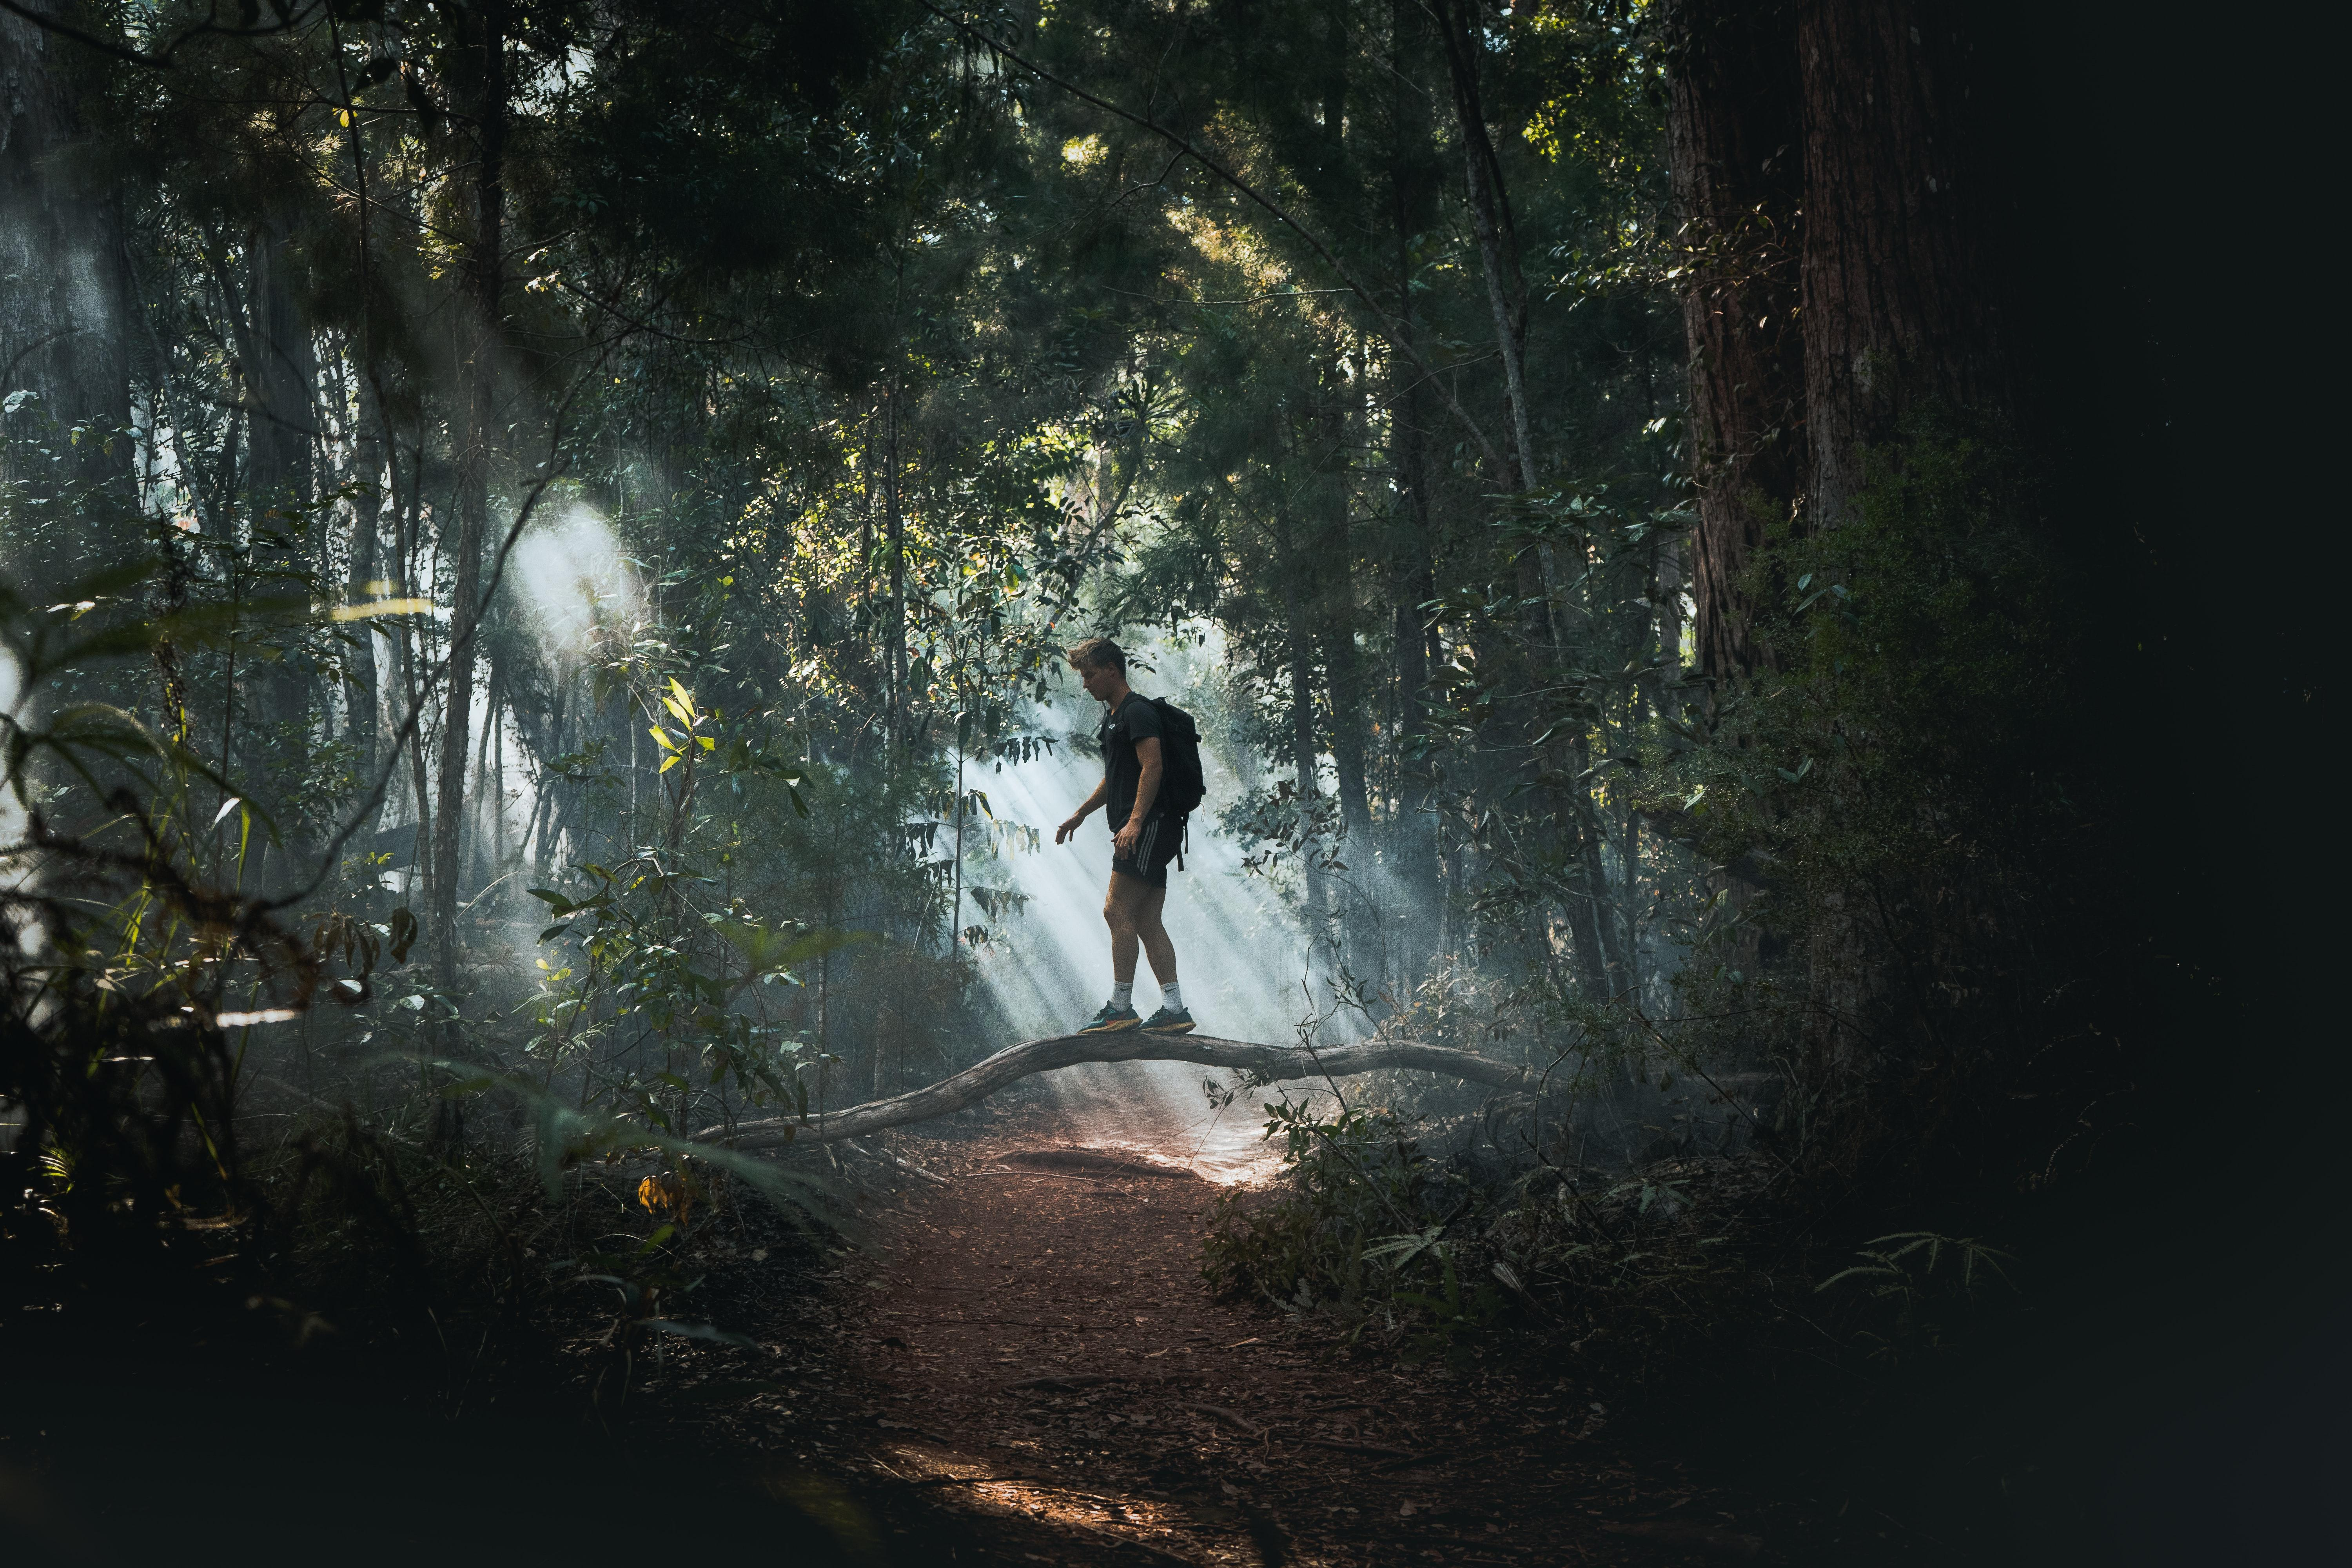 Man in Deep Forest